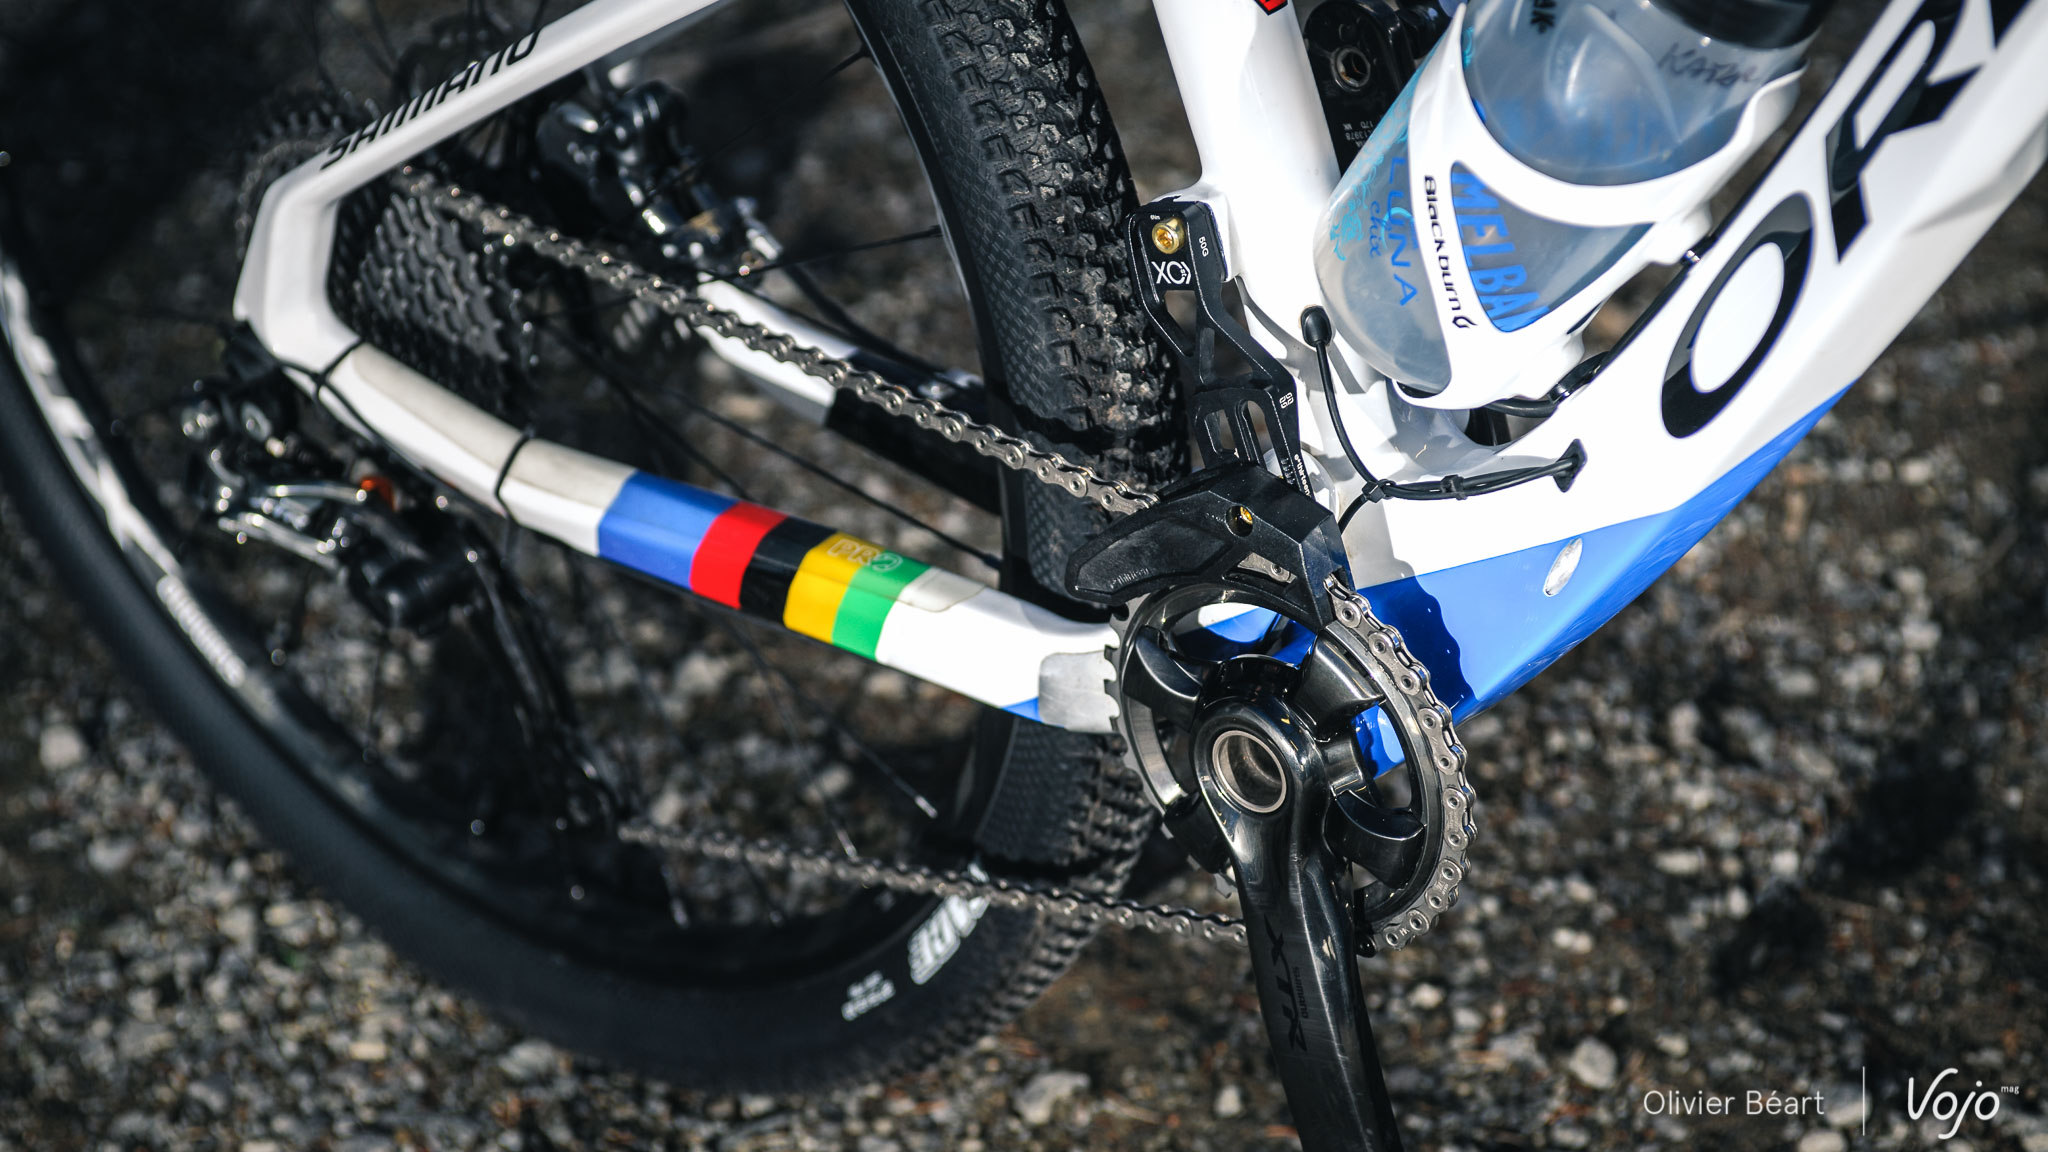 World_Cup_MTB_Pro_Bike_Check_Catharine_Pendrel°Orbea_Oiz_Copyright_OBeart_VojoMag-1-2